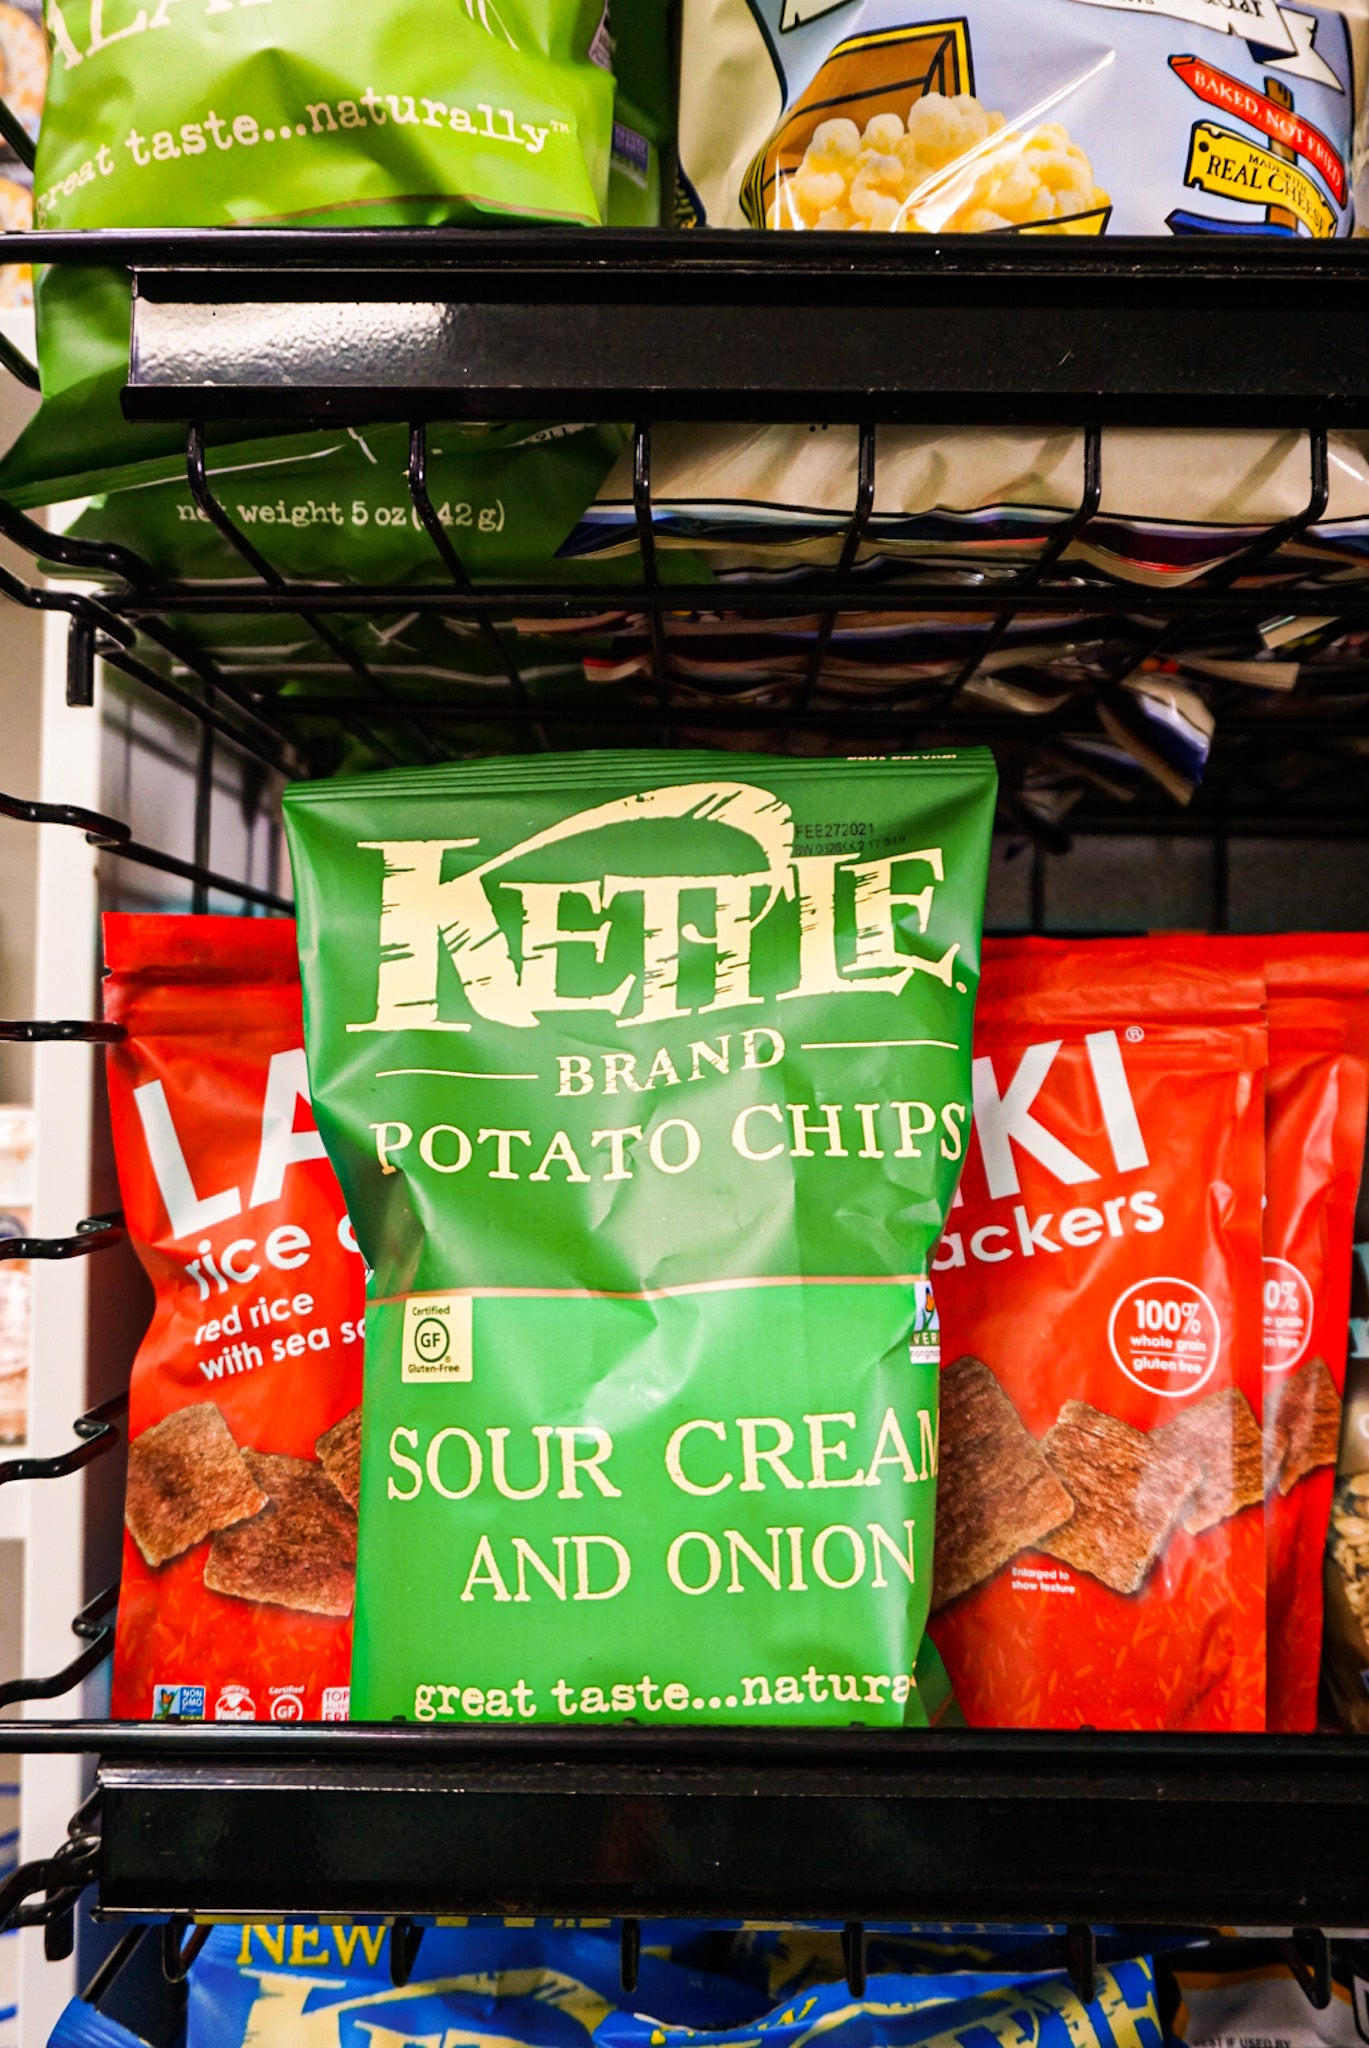 Kettle Potato Chips Sour Cream and Onion 5 oz - Westport